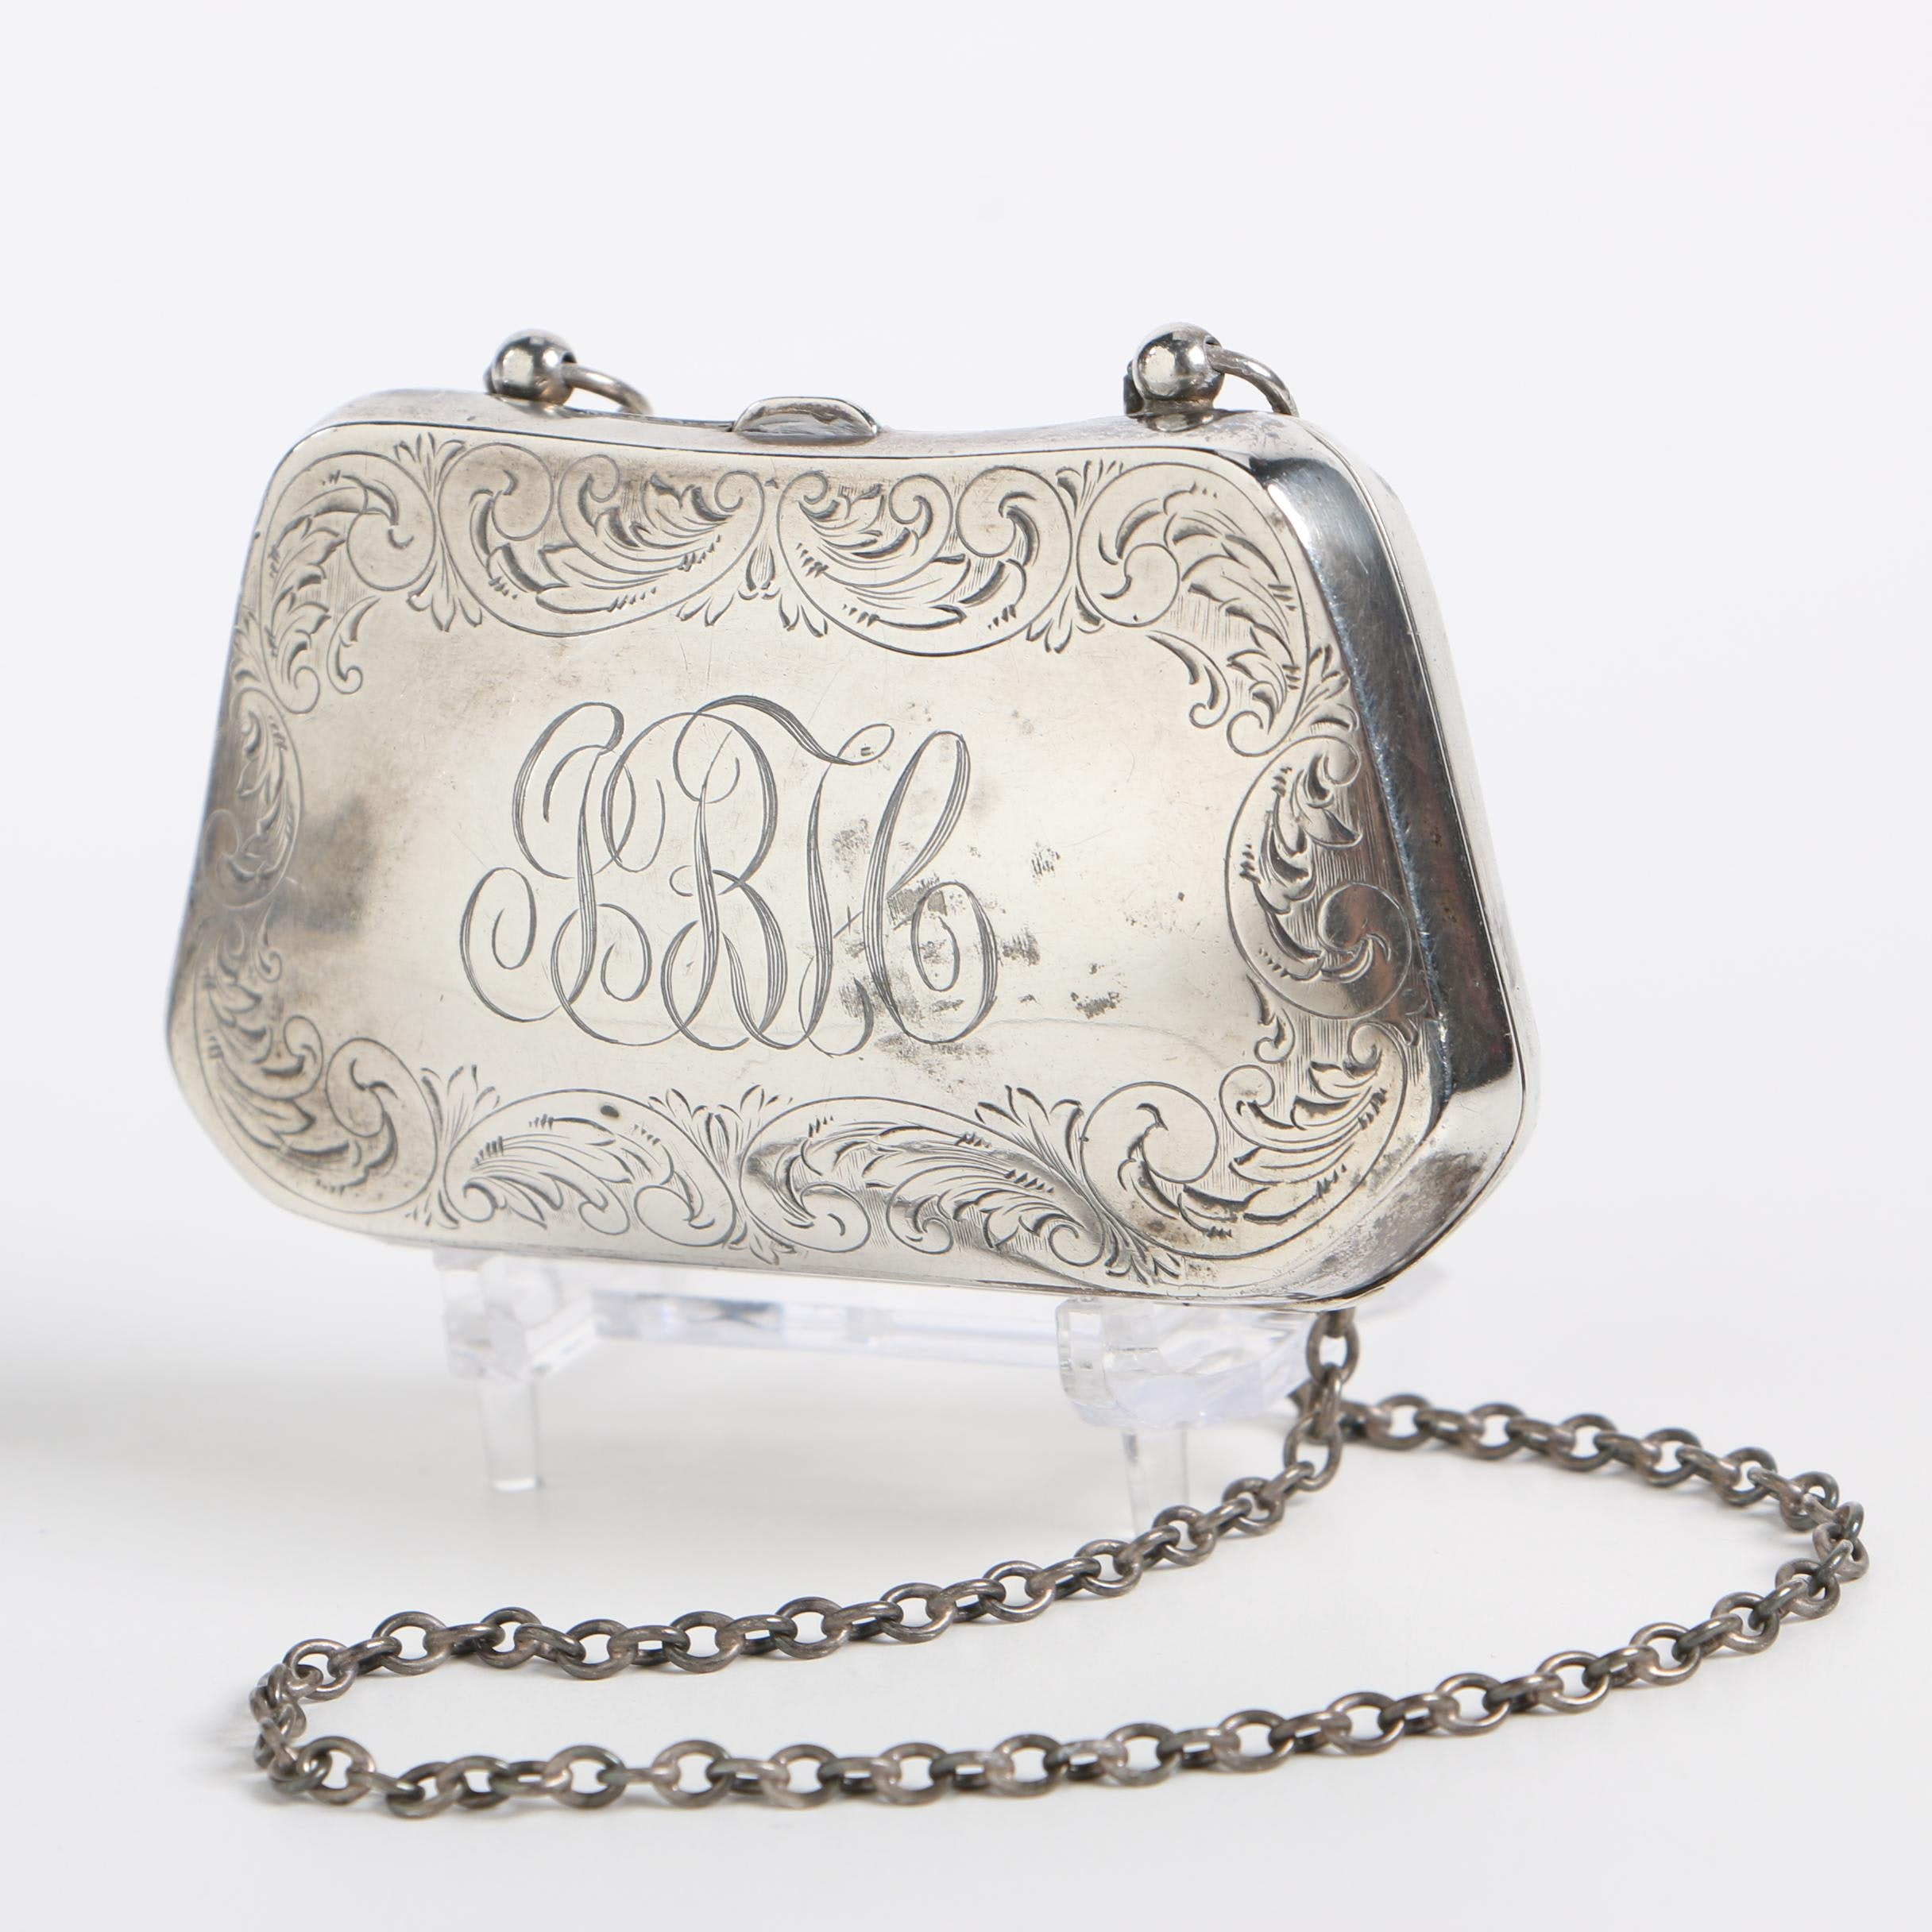 Codding Bros. & Heilbron Sterling Coin Case, Late 19th/ Early 20th Century